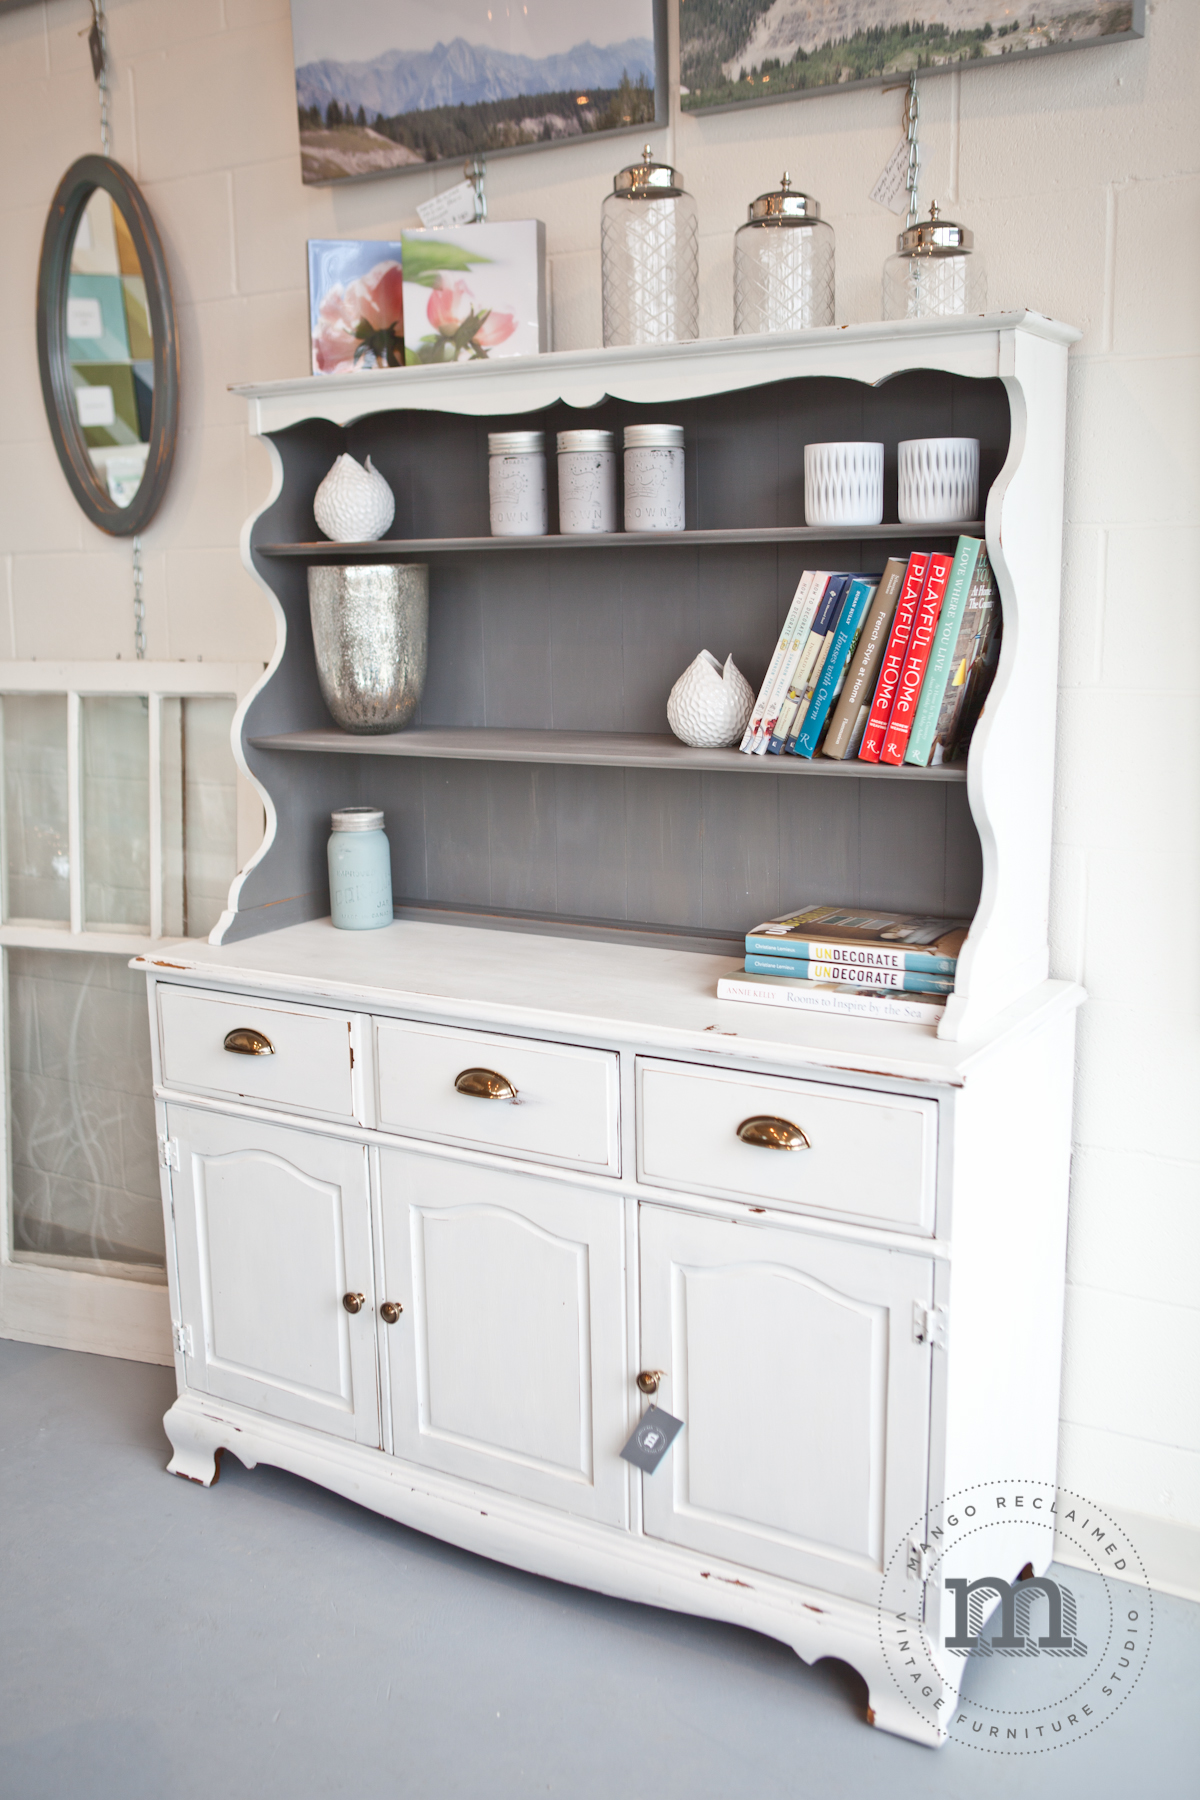 Painted in Miss Mustard Seed's Milk Paint 'Ironstone' and 'Trophy'. This hutch is currently available for $895.